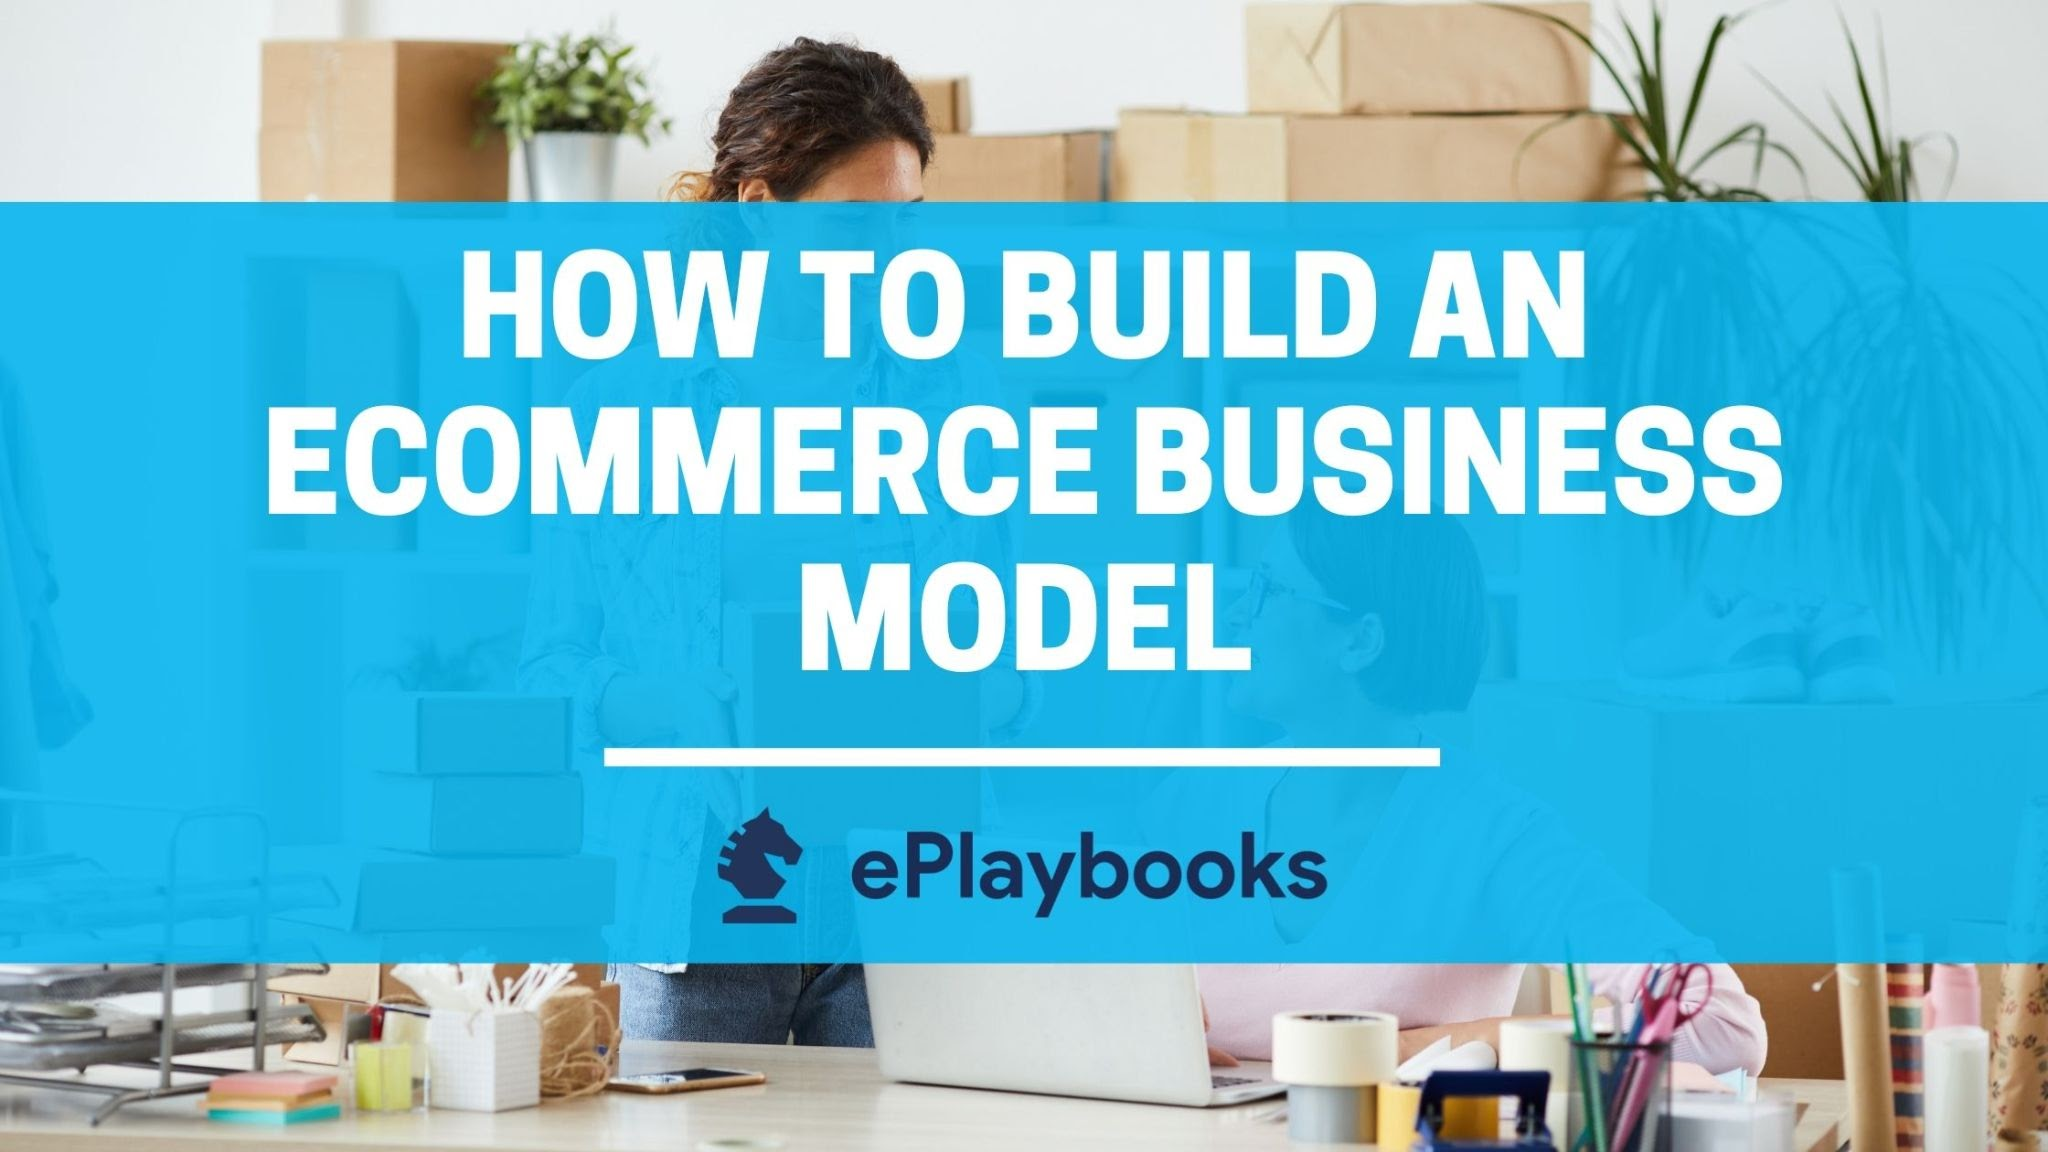 How to build an eCommerce business model